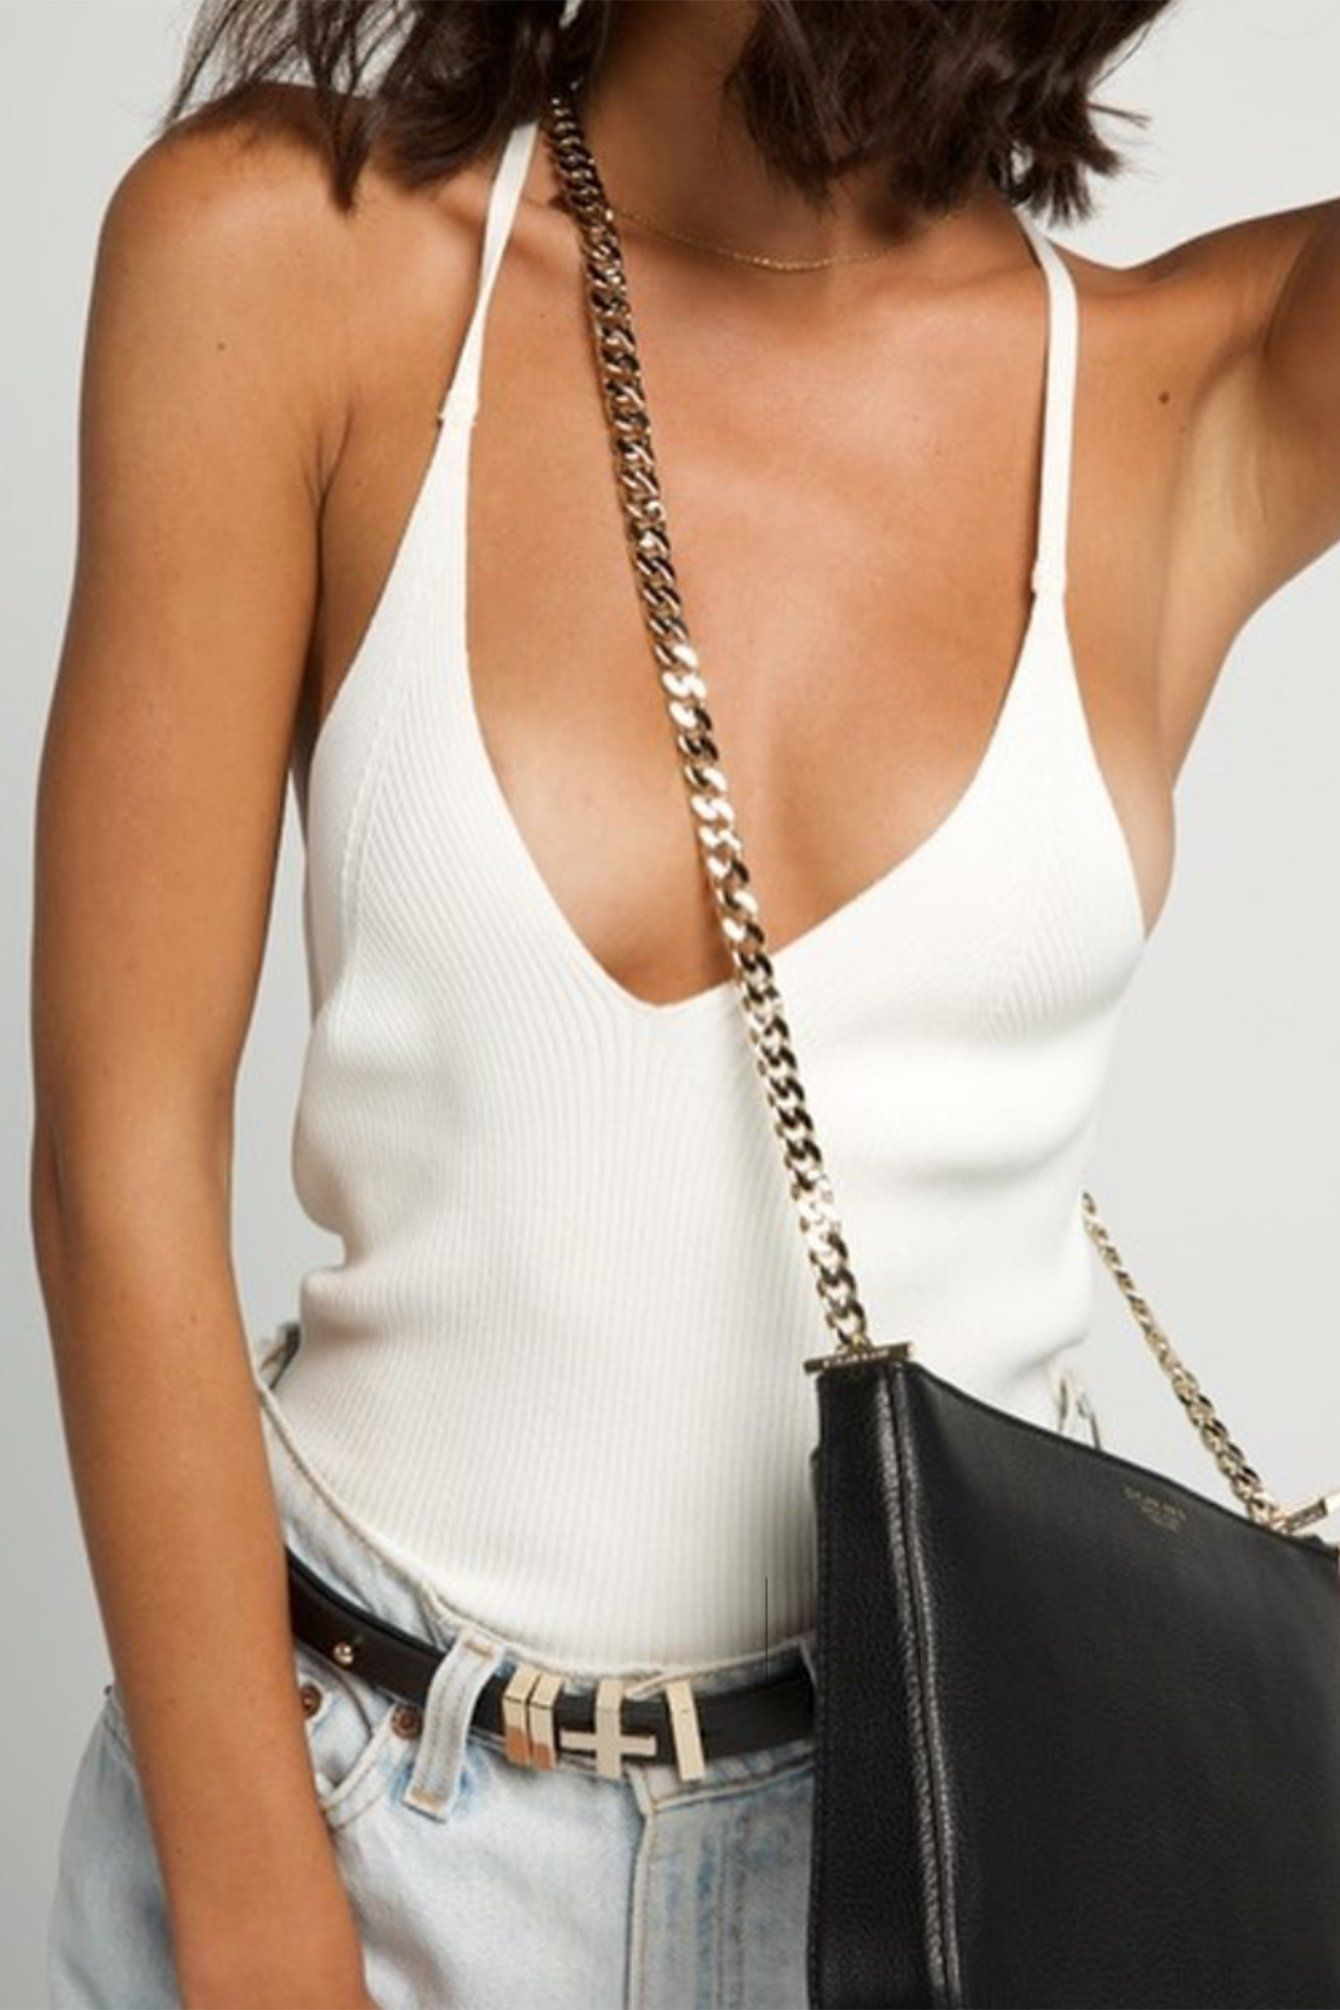 DYLAN KAIN | Chloe Shoulder Bag - Gold